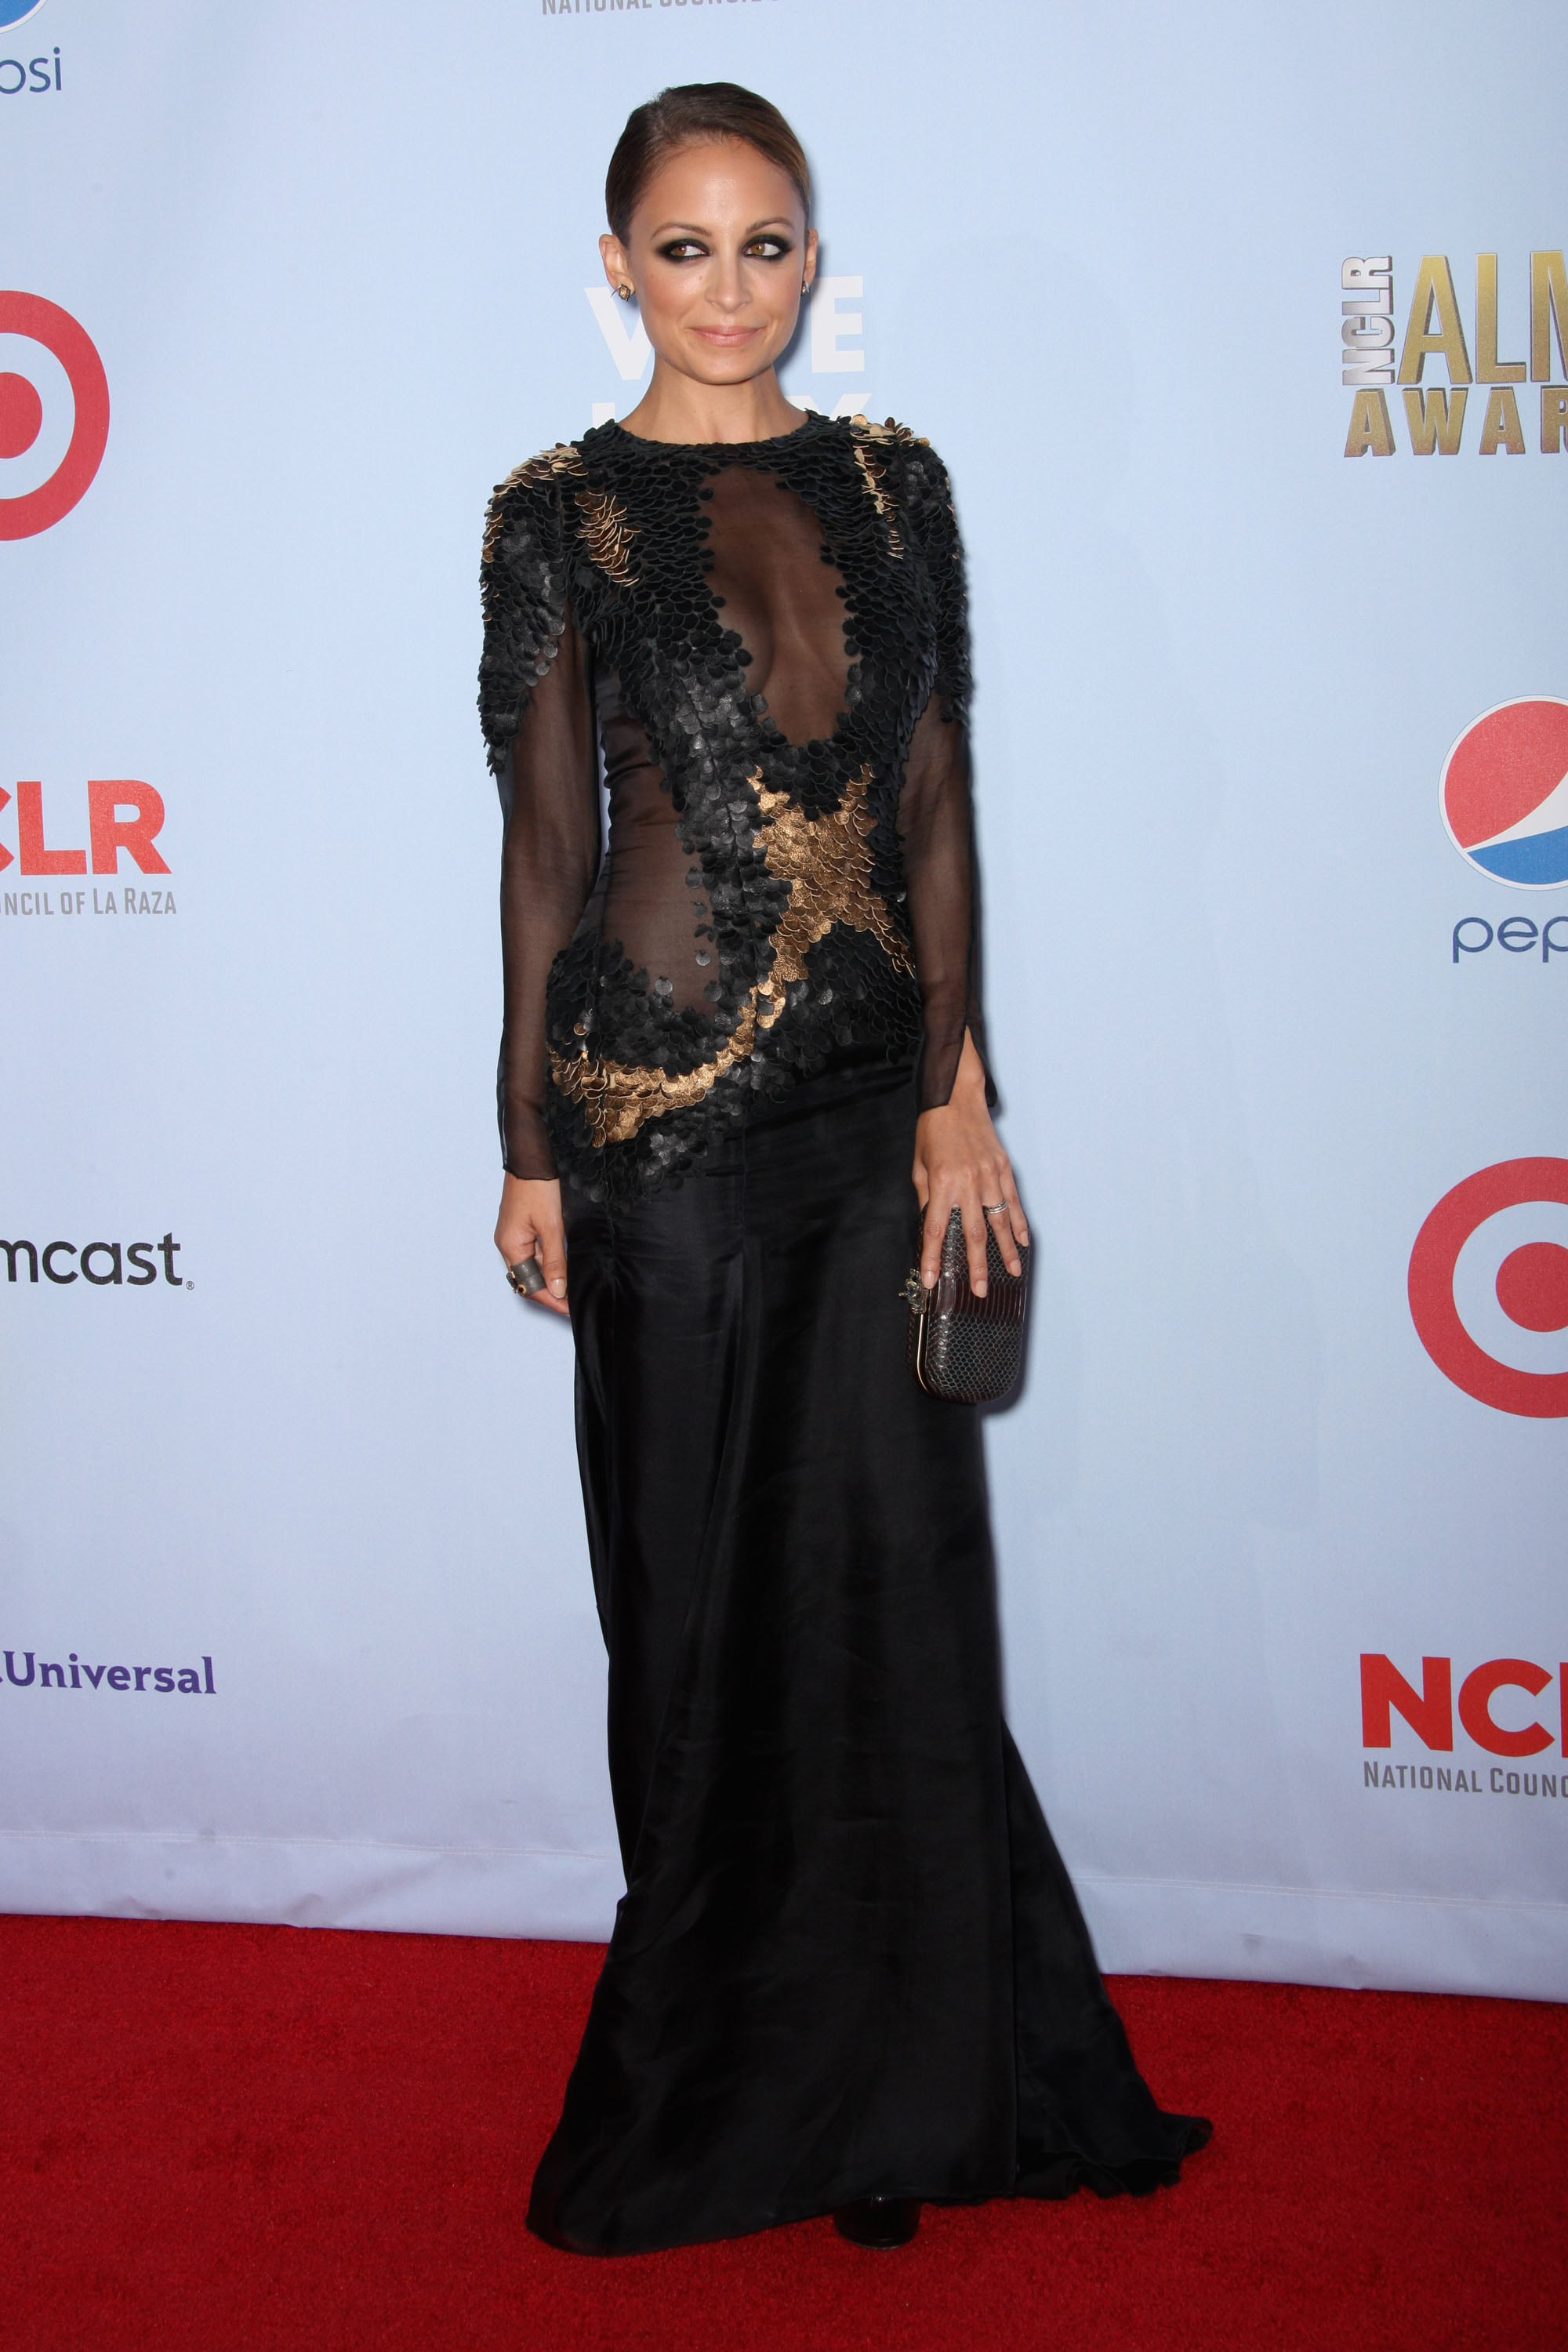 Nicole Richie attended the 2012 ALMA Awards.